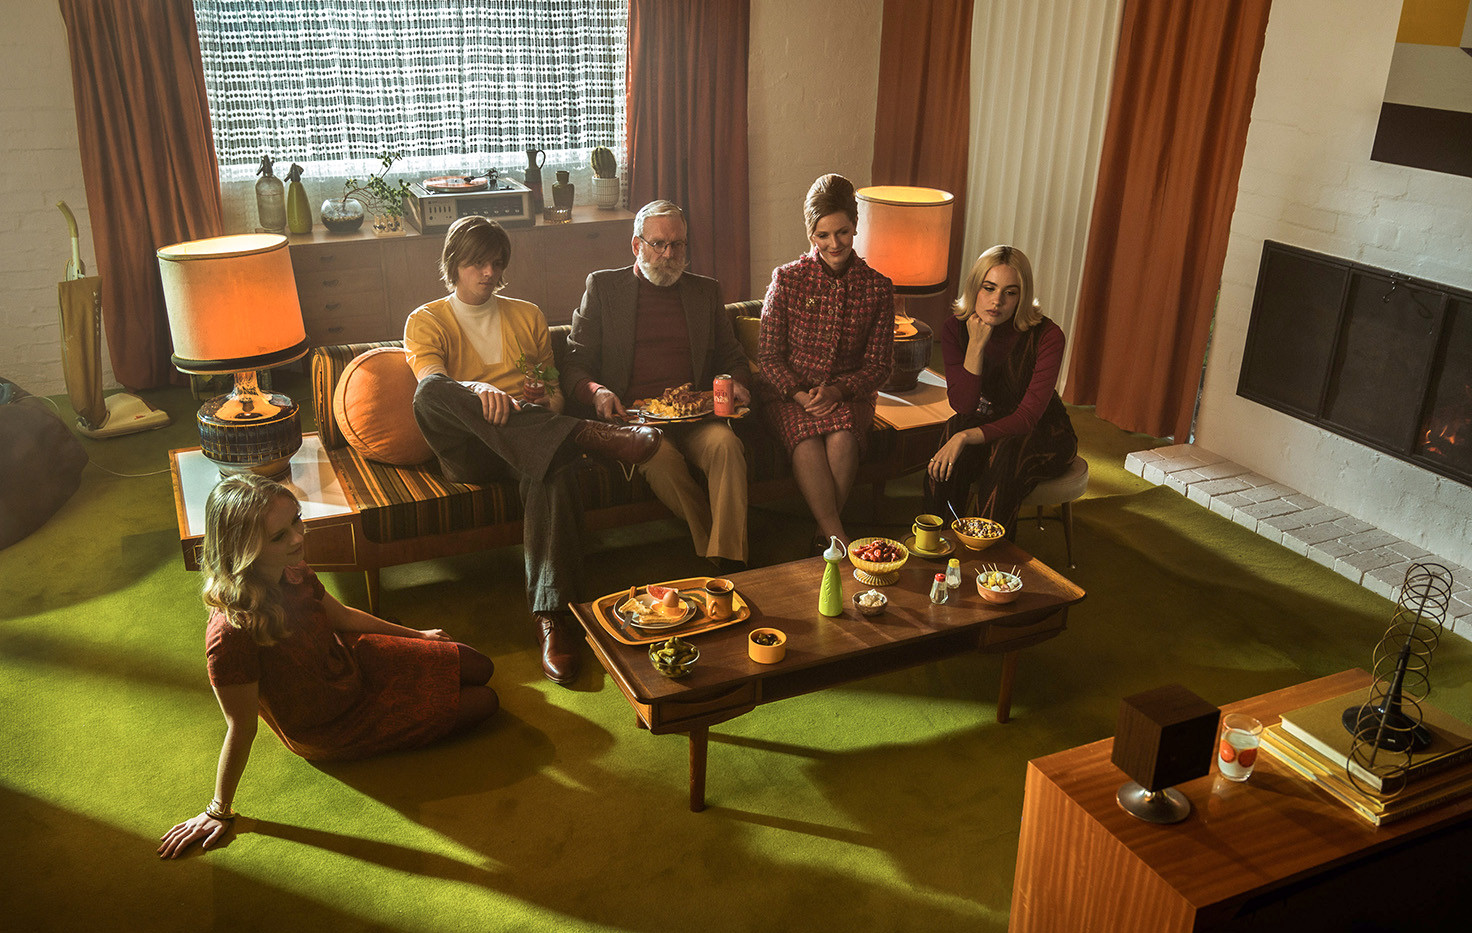 Set Stills of 'As Long As You Care' music video for artist RUEL  Production Design & Set Styling